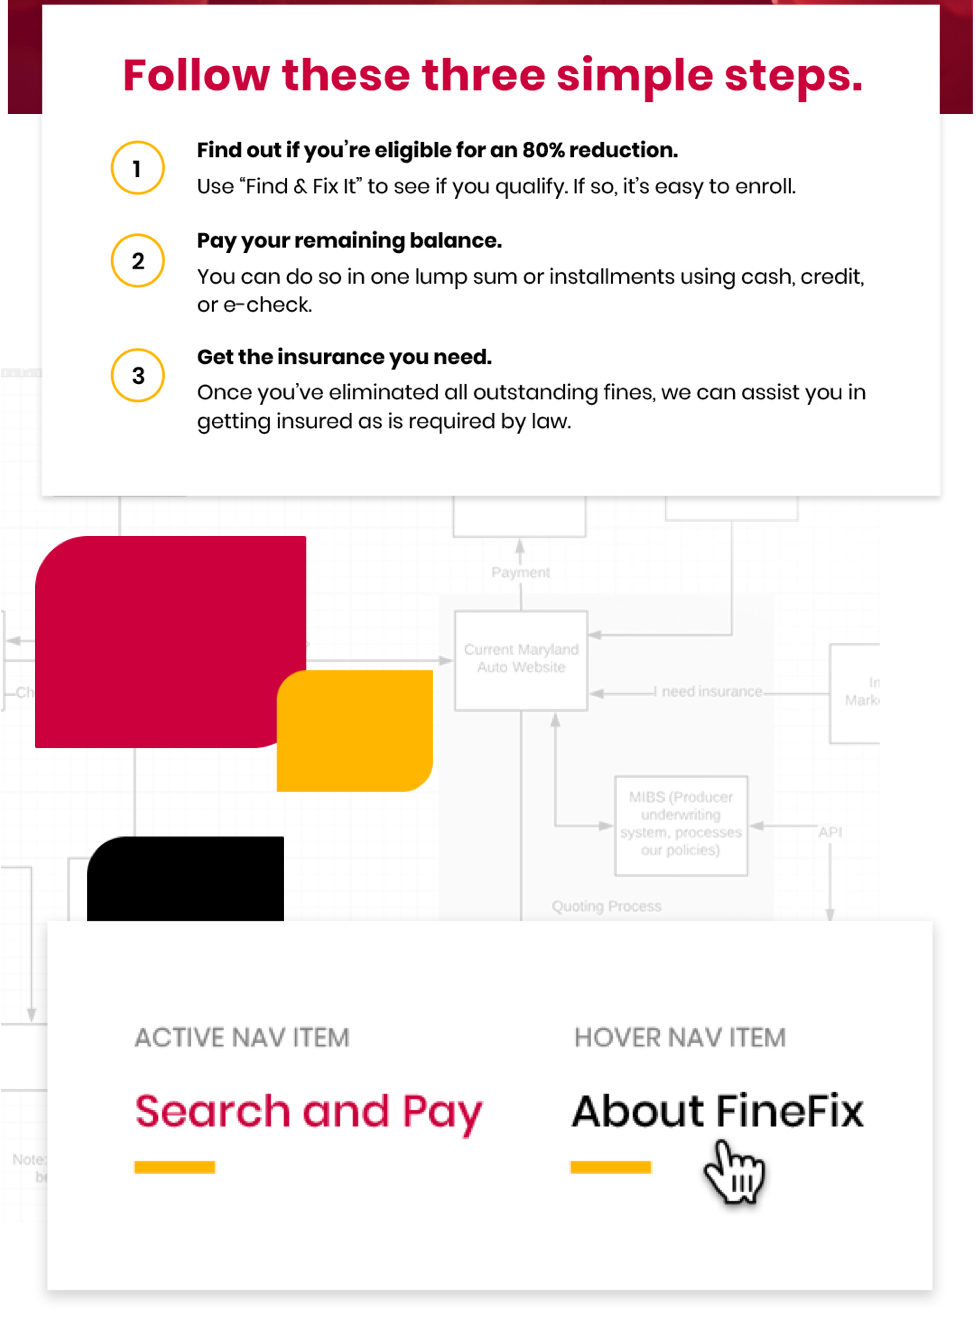 """Text: Follow these three simple steps. 1) Find out if you're eligible for an 80% reduction. Use """"Find & Fix It"""" to see if you qualify. If so, it's easy to enroll. 2) Pay your remaining balance. You can do so in one lump sum or installments using cash, credit, or e-check. 3) Get the insurance you need. Once you've eliminated all outstanding fines, we can assist you in getting insured as is required by law."""